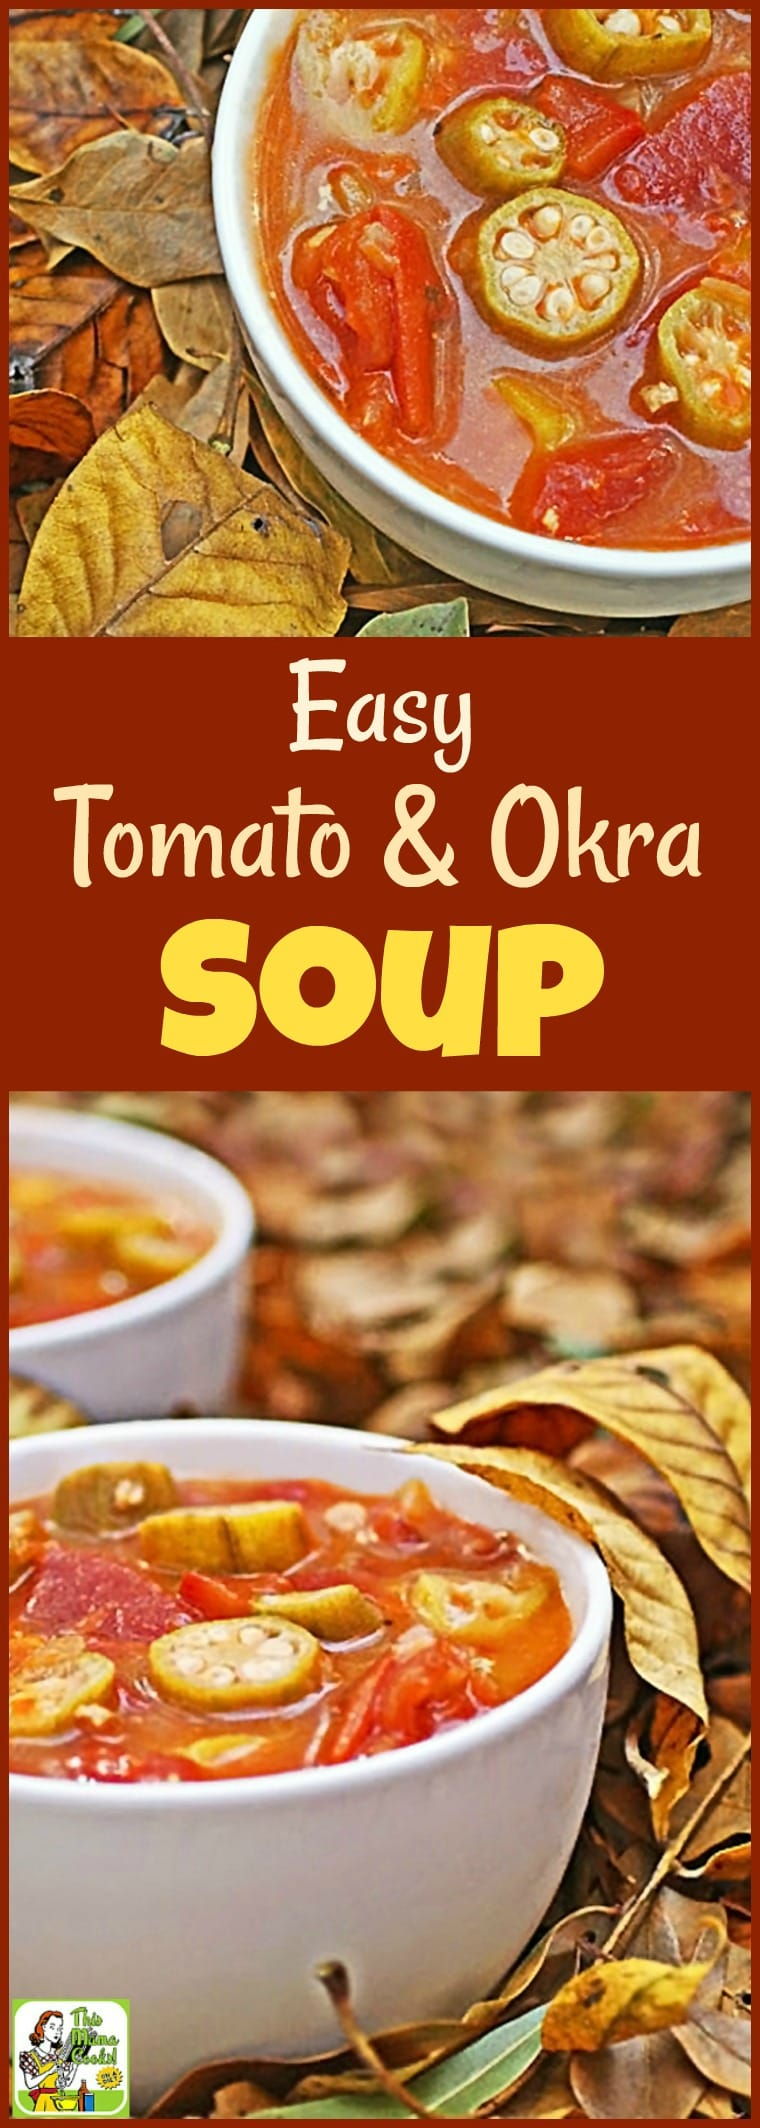 Have you ever tried okra soup? Well, if you\'re looking for an easy to make, healthy soup recipe, you\'ll love this Easy Tomato & Okra Soup recipe. So delicious, even your kids will ask for seconds! Make a double batch and freeze half for another night\'s soup and salad lunch or dinner. #soup #okra #tomatoes #healthysoup #glutenfree #soupandsalad #recipe #easy #recipeoftheday #healthyrecipes #easyrecipes